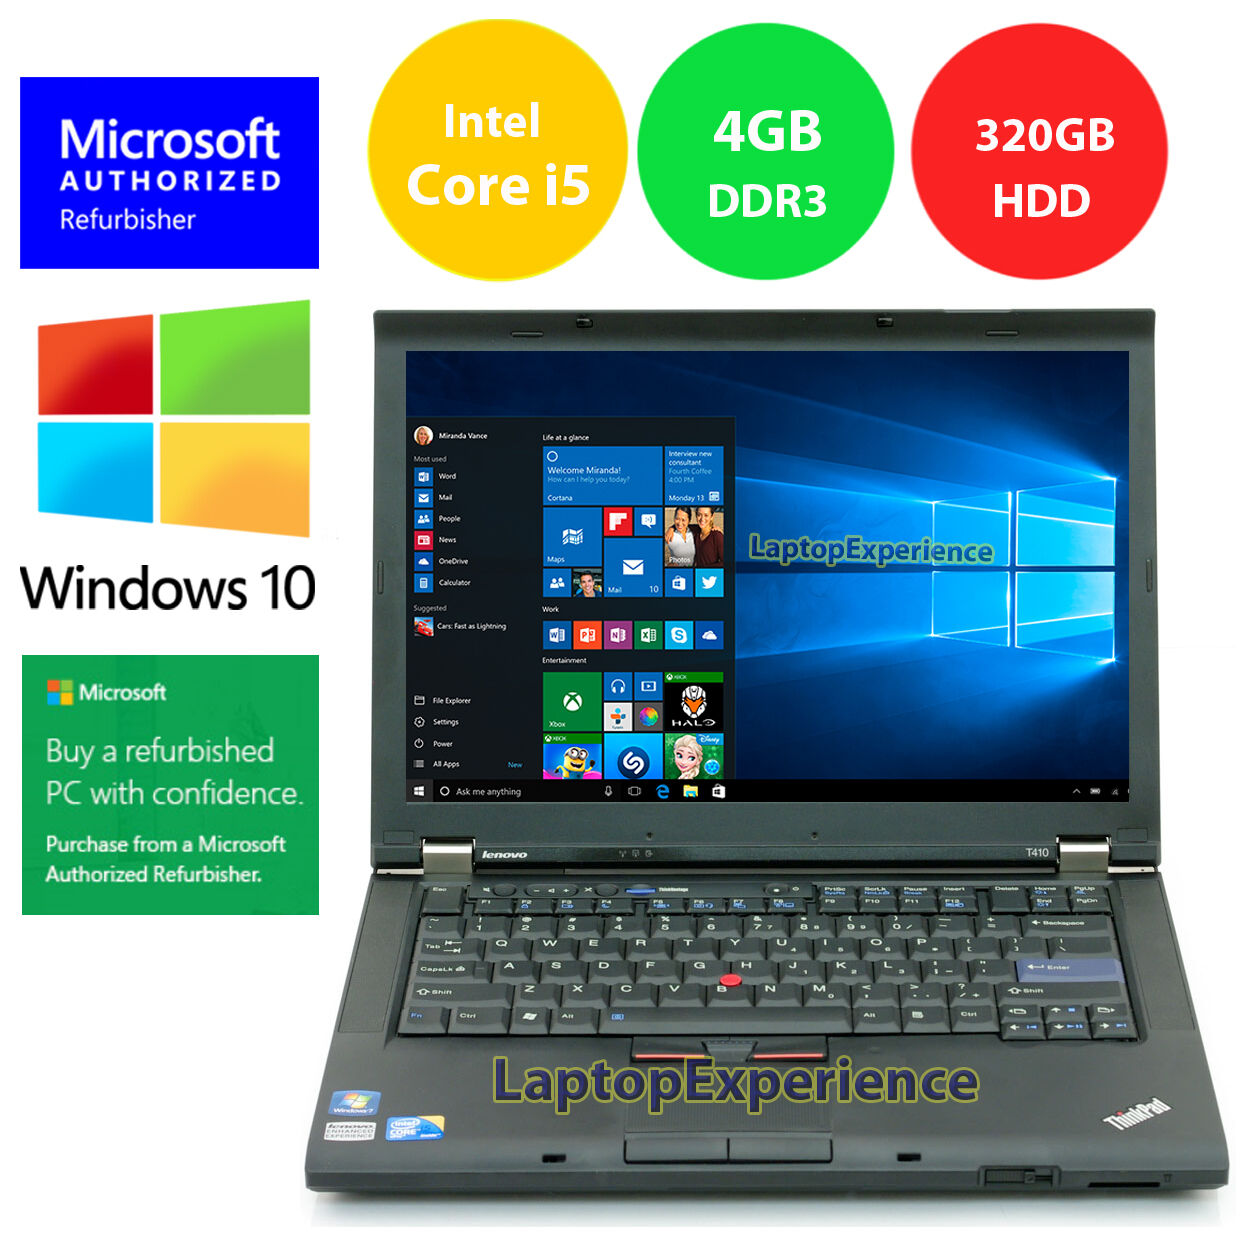 Laptop Windows - LENOVO LAPTOP THINKPAD NOTEBOOK WINDOWS 10 DVDRW i5 2.40GHz 320GB HD 4GB WiFi PC